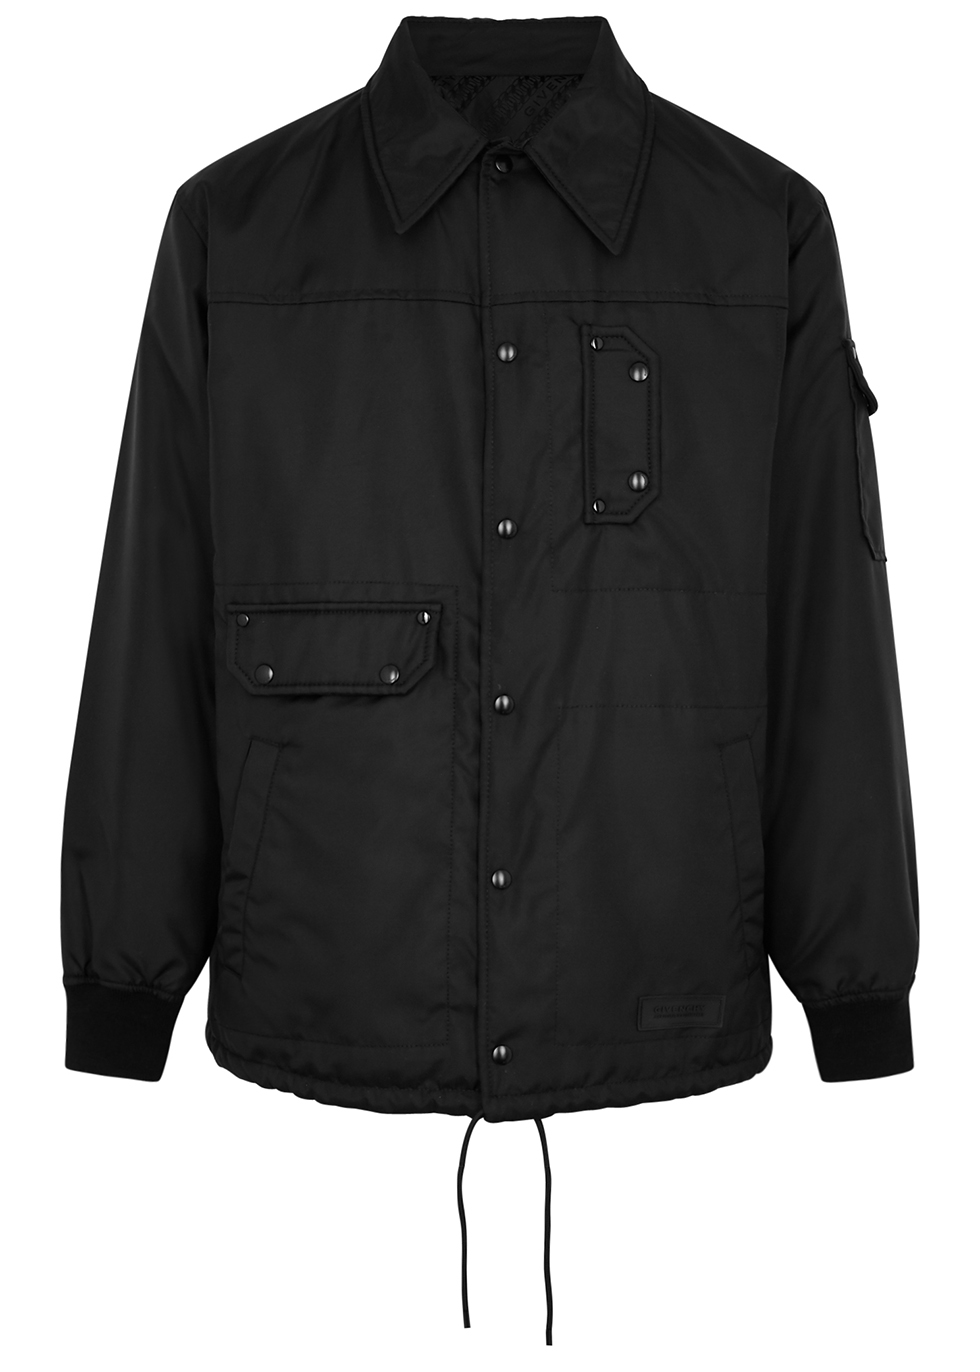 Black reversible nylon jacket